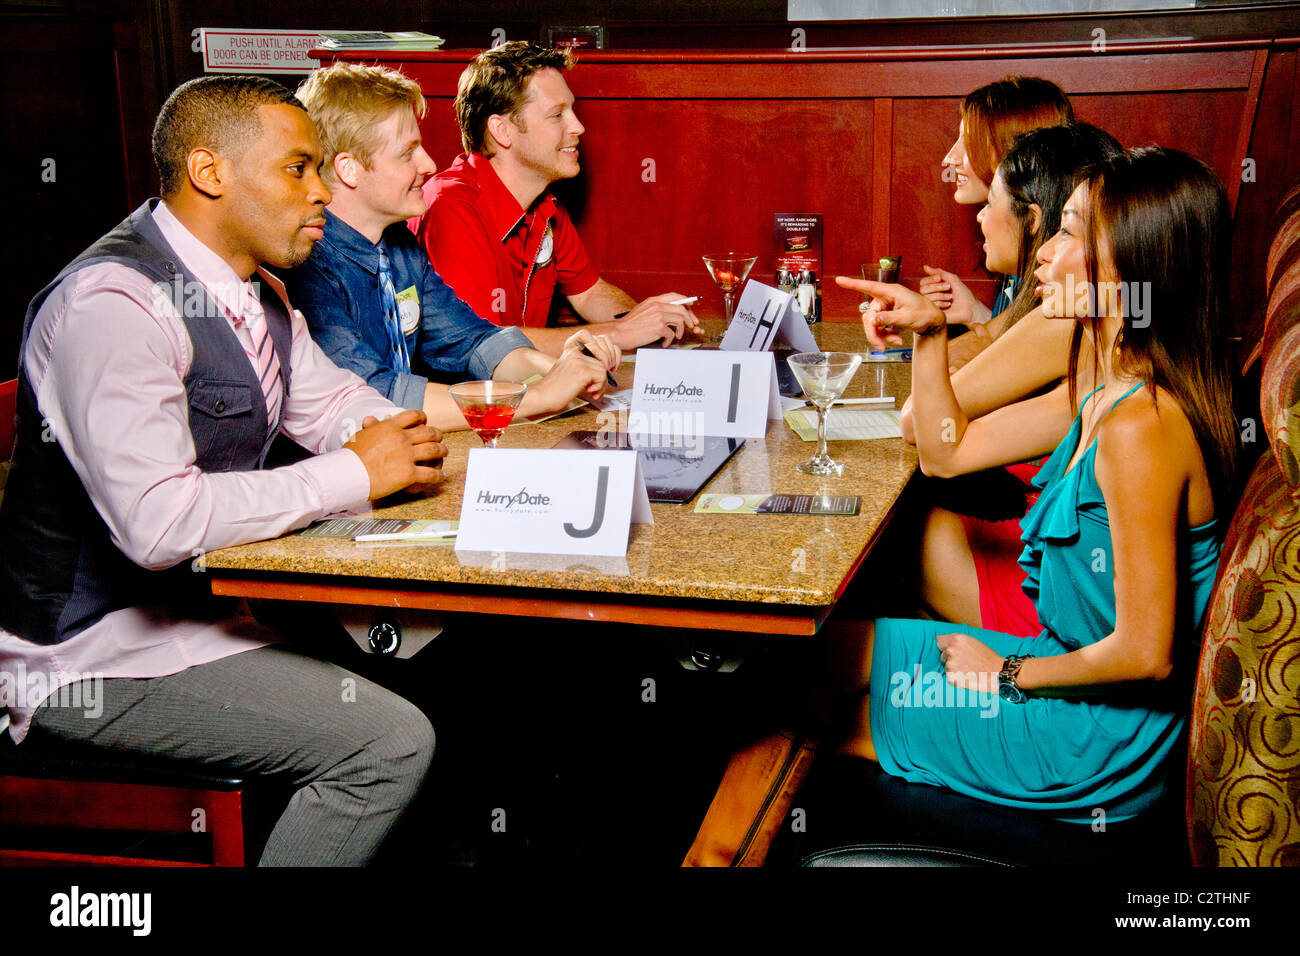 Hitch speed dating restaurant